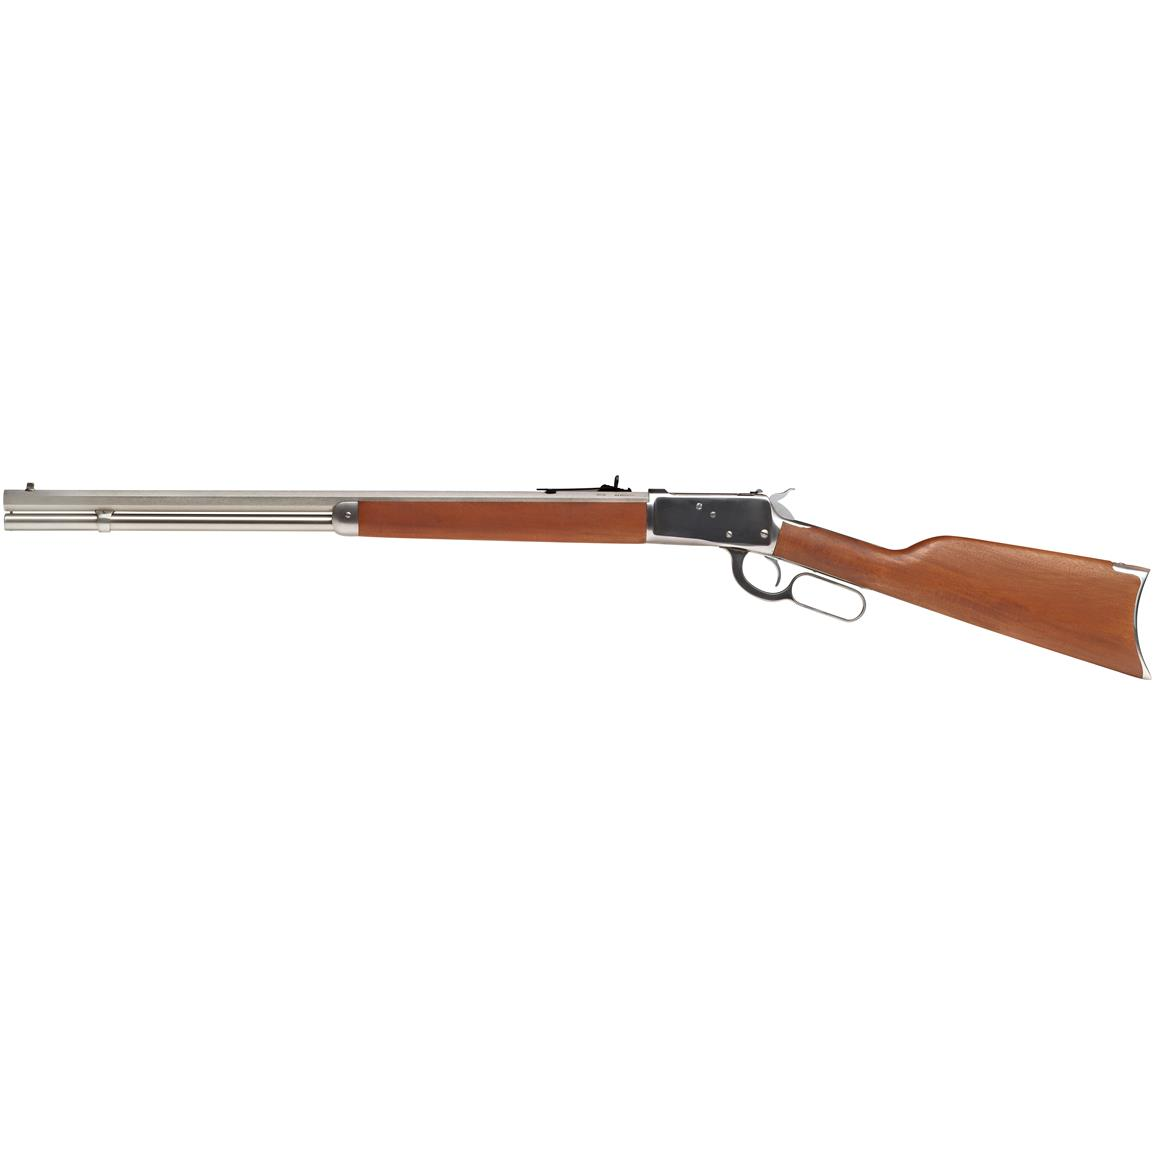 Rossi Model 92, Lever Action, .44 Magnum, Centerfire, R92-50011, 662205982545, 24 inch Barrel